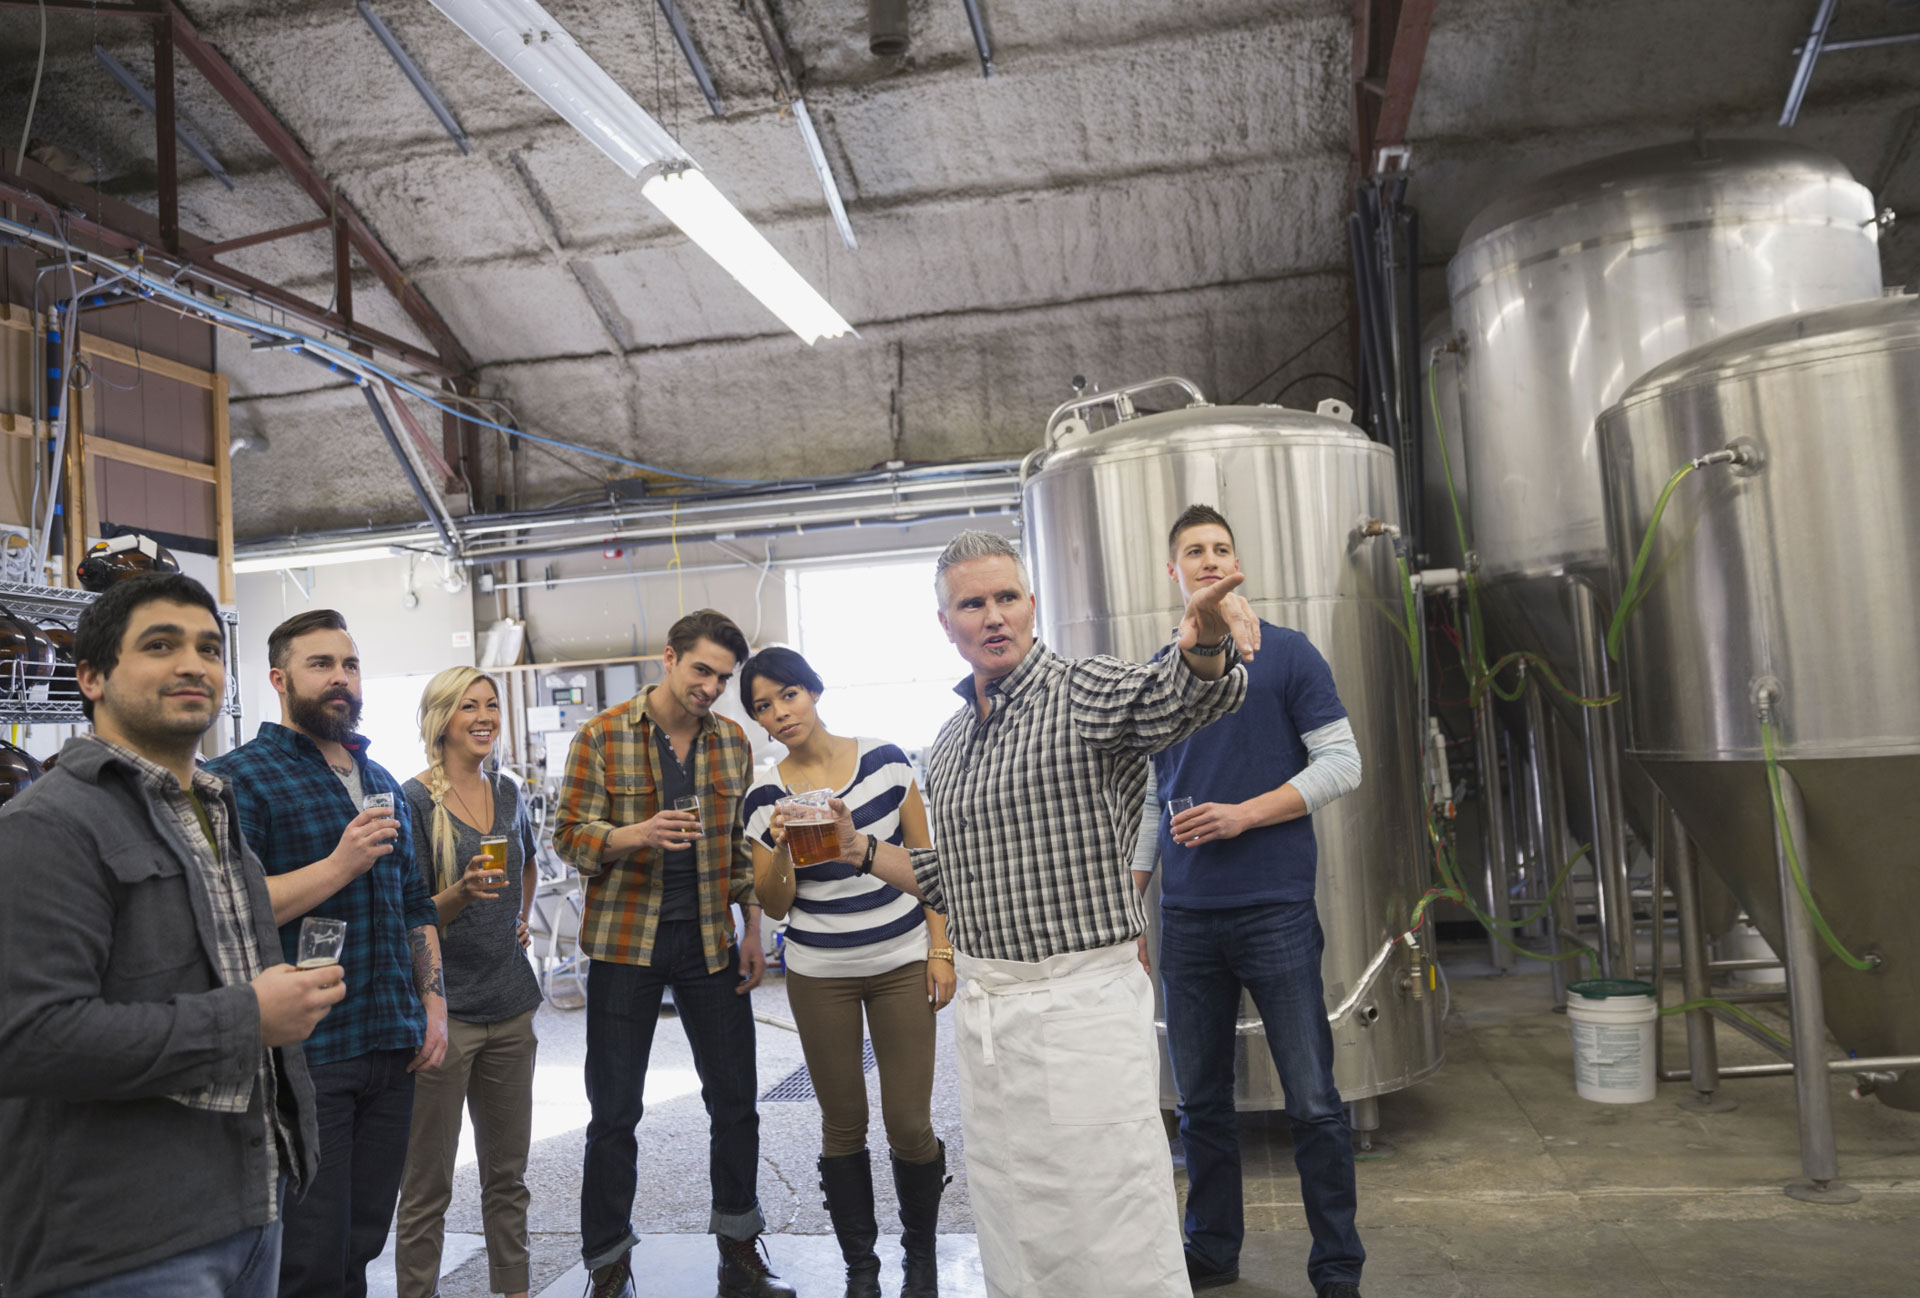 A brewery tour